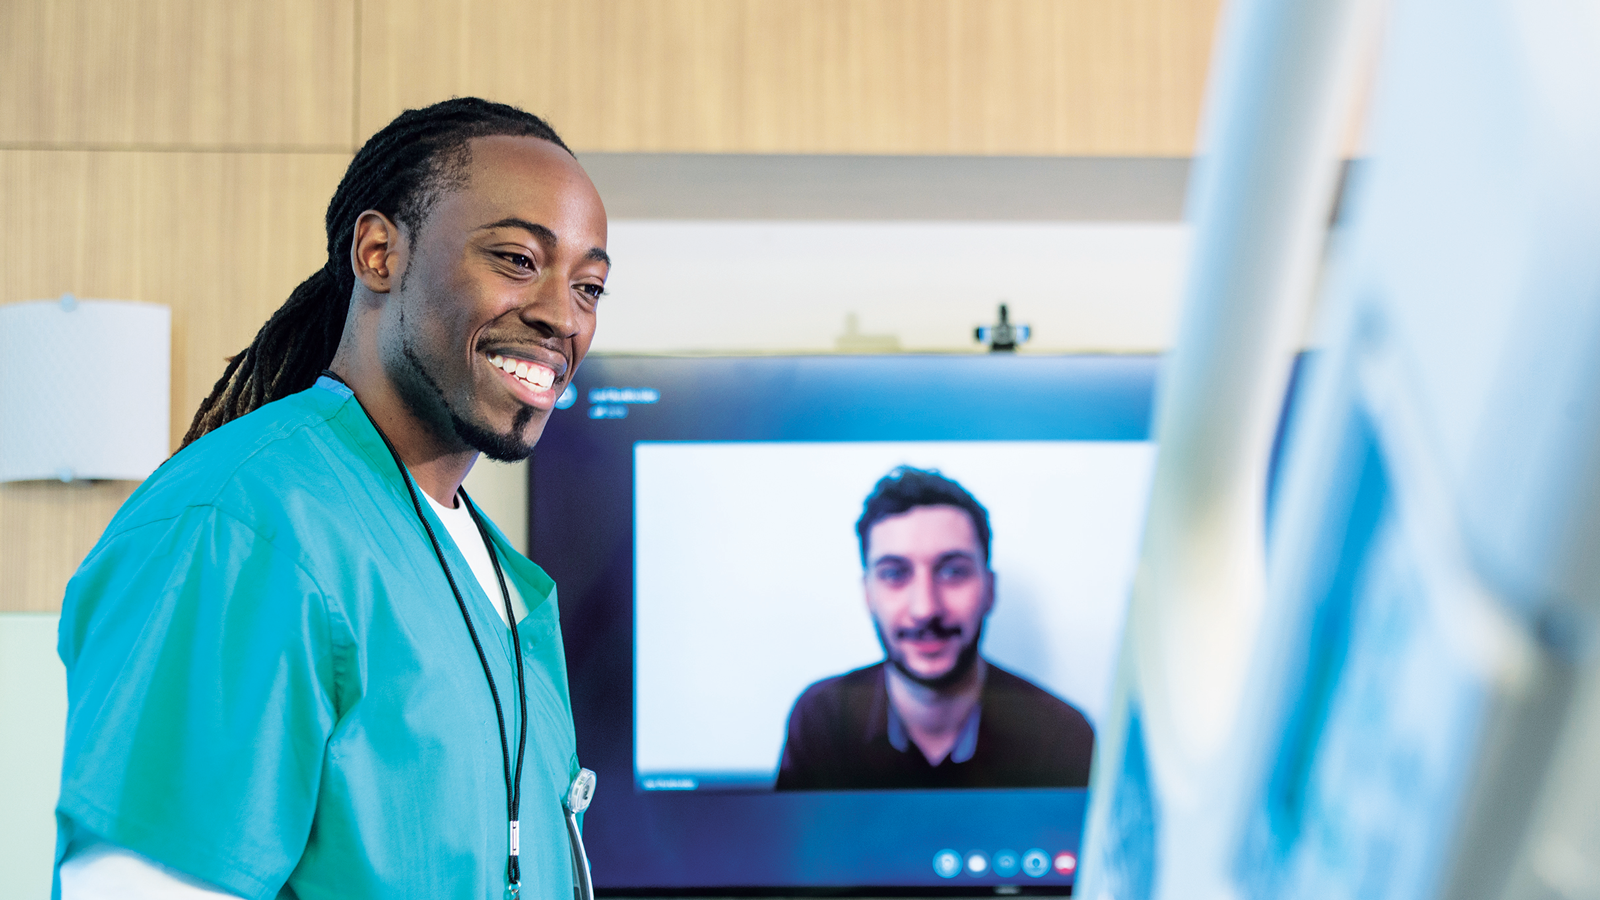 Man in green scrubs with Skype in the background